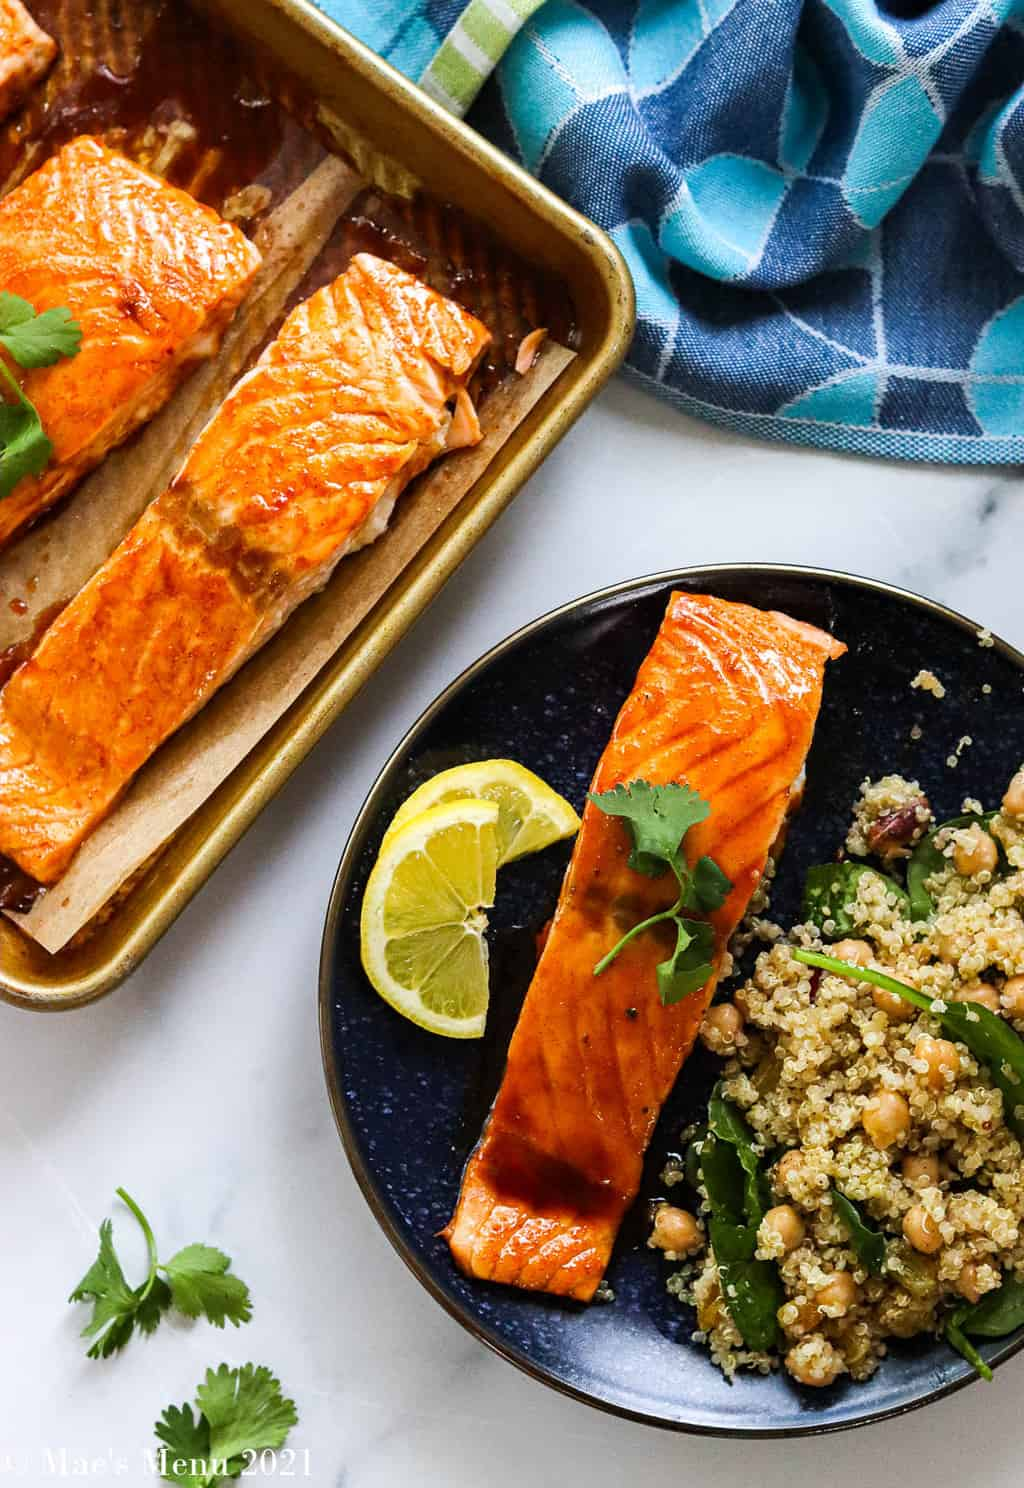 An overhead shot of a pan of bourbon salmon next to a small dish of the salmon